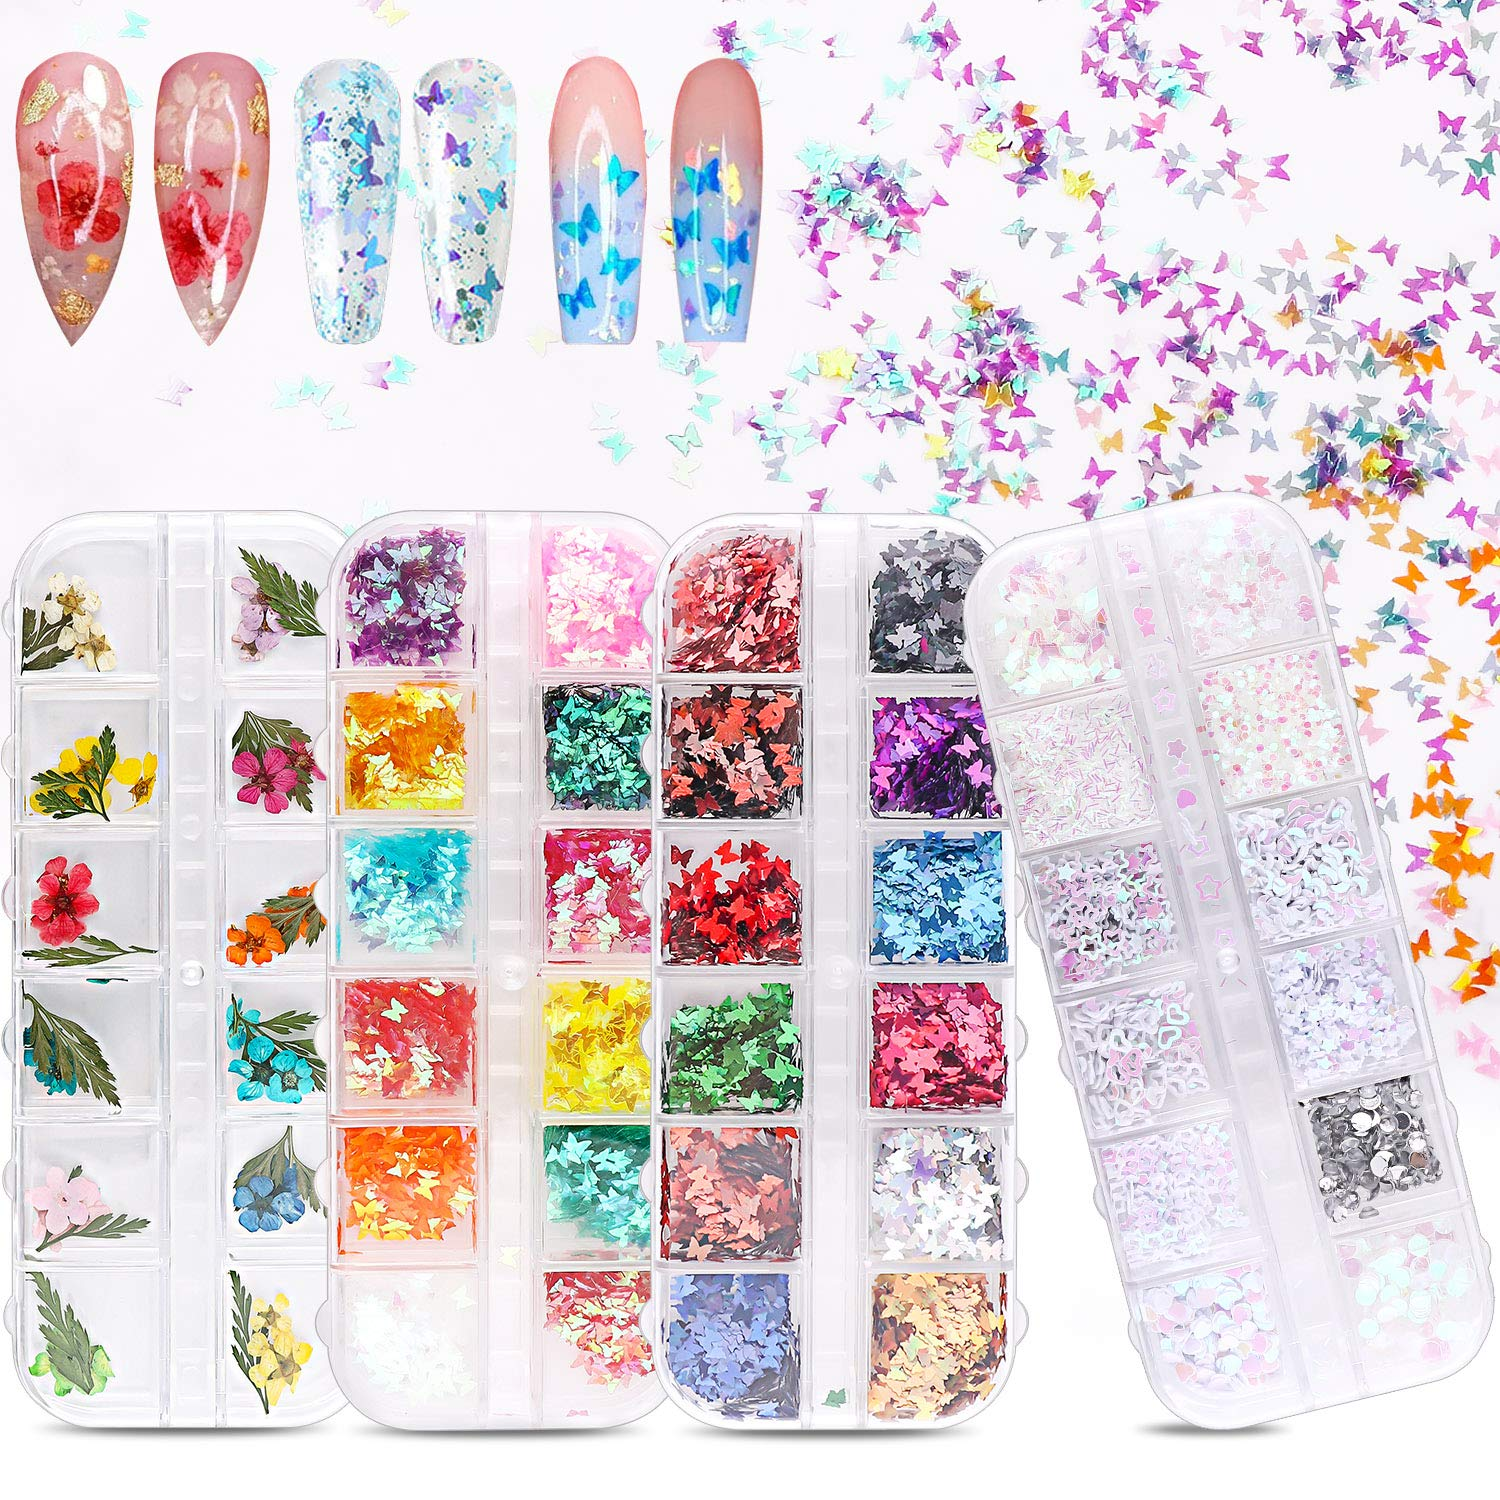 amazon.com - 3D Butterfly Nail Art Holographic Glitter and Nail Dried Flowers 48 Colors Set, Tufusiur Nail Sequins Supplies Face Body Flakes Gifts for Decorations Accessories& DIY Crafting